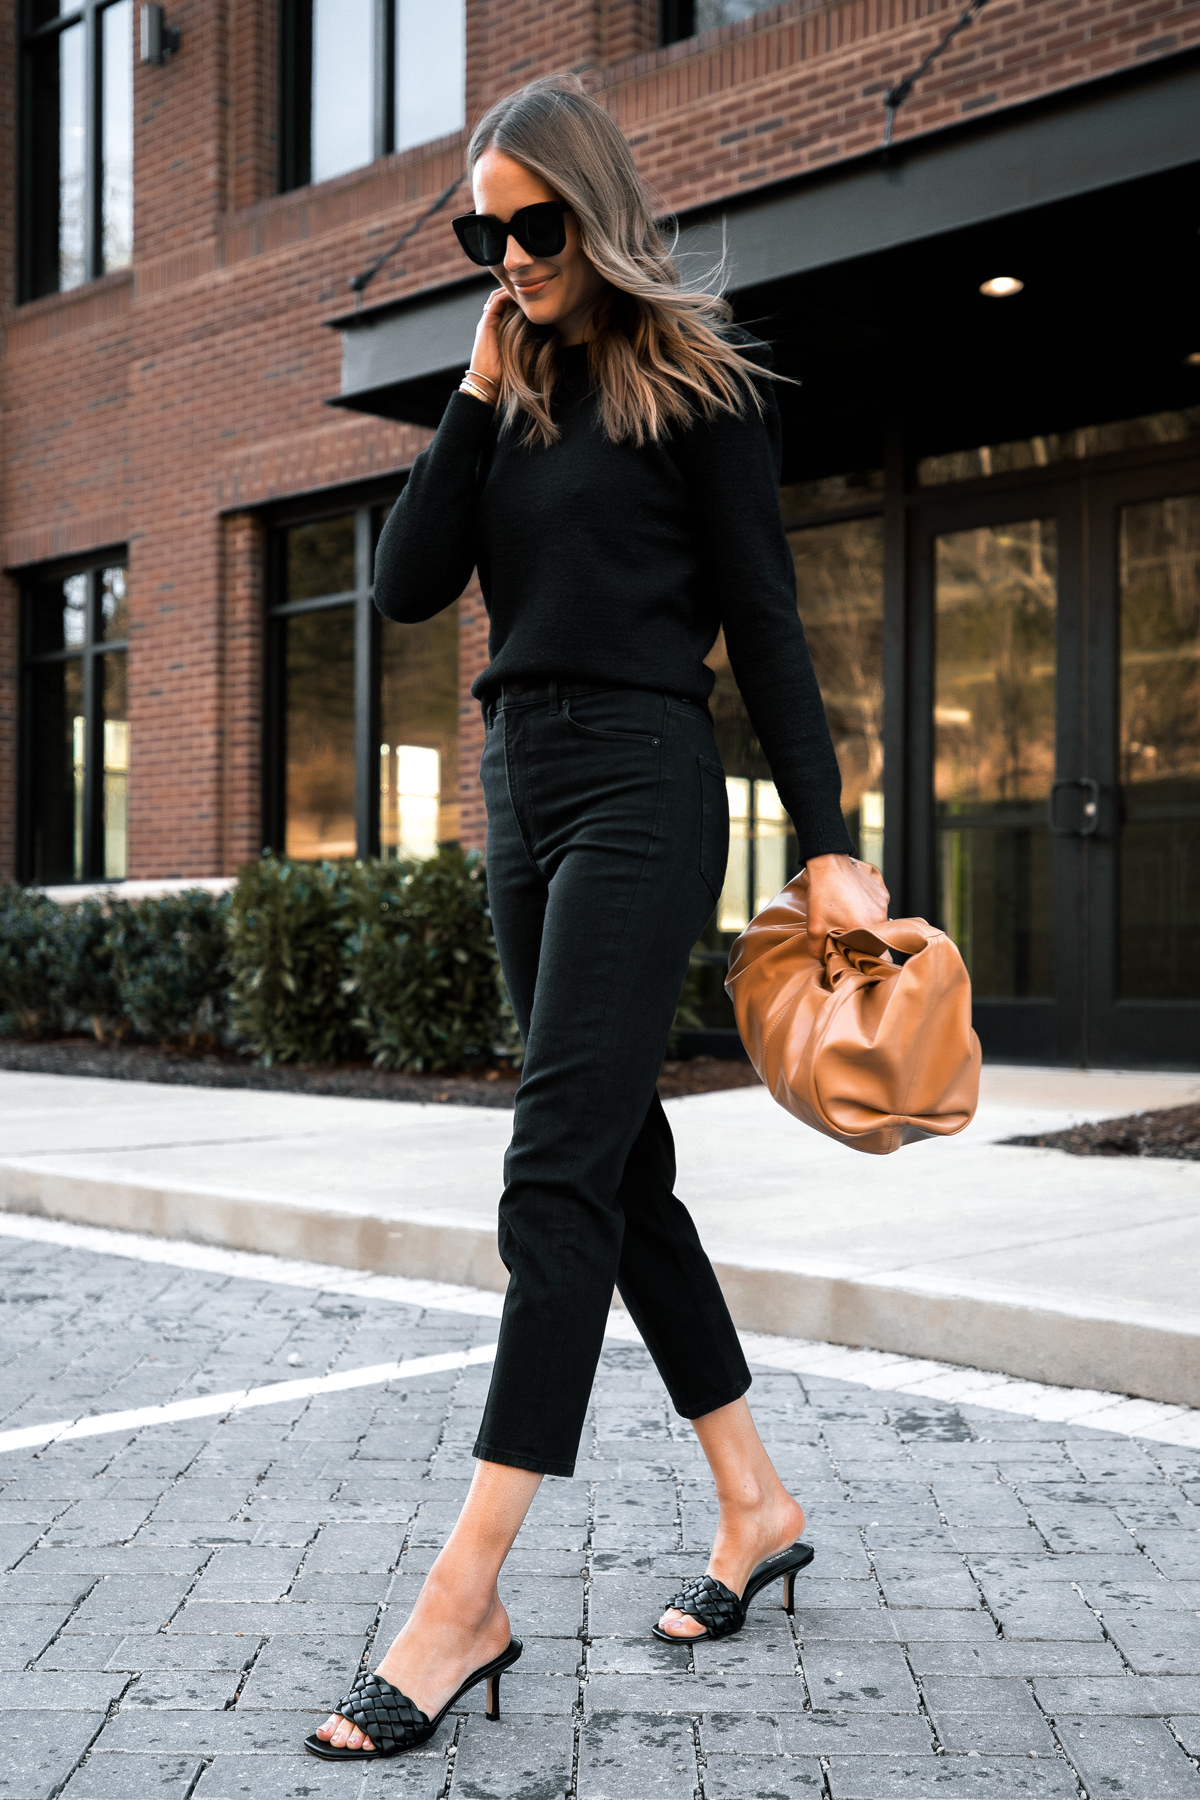 Fashion Jackson Wearing Express Black Puff Sleeve Sweater Black Mom Jeans Black Sandals Tan Handbag 1